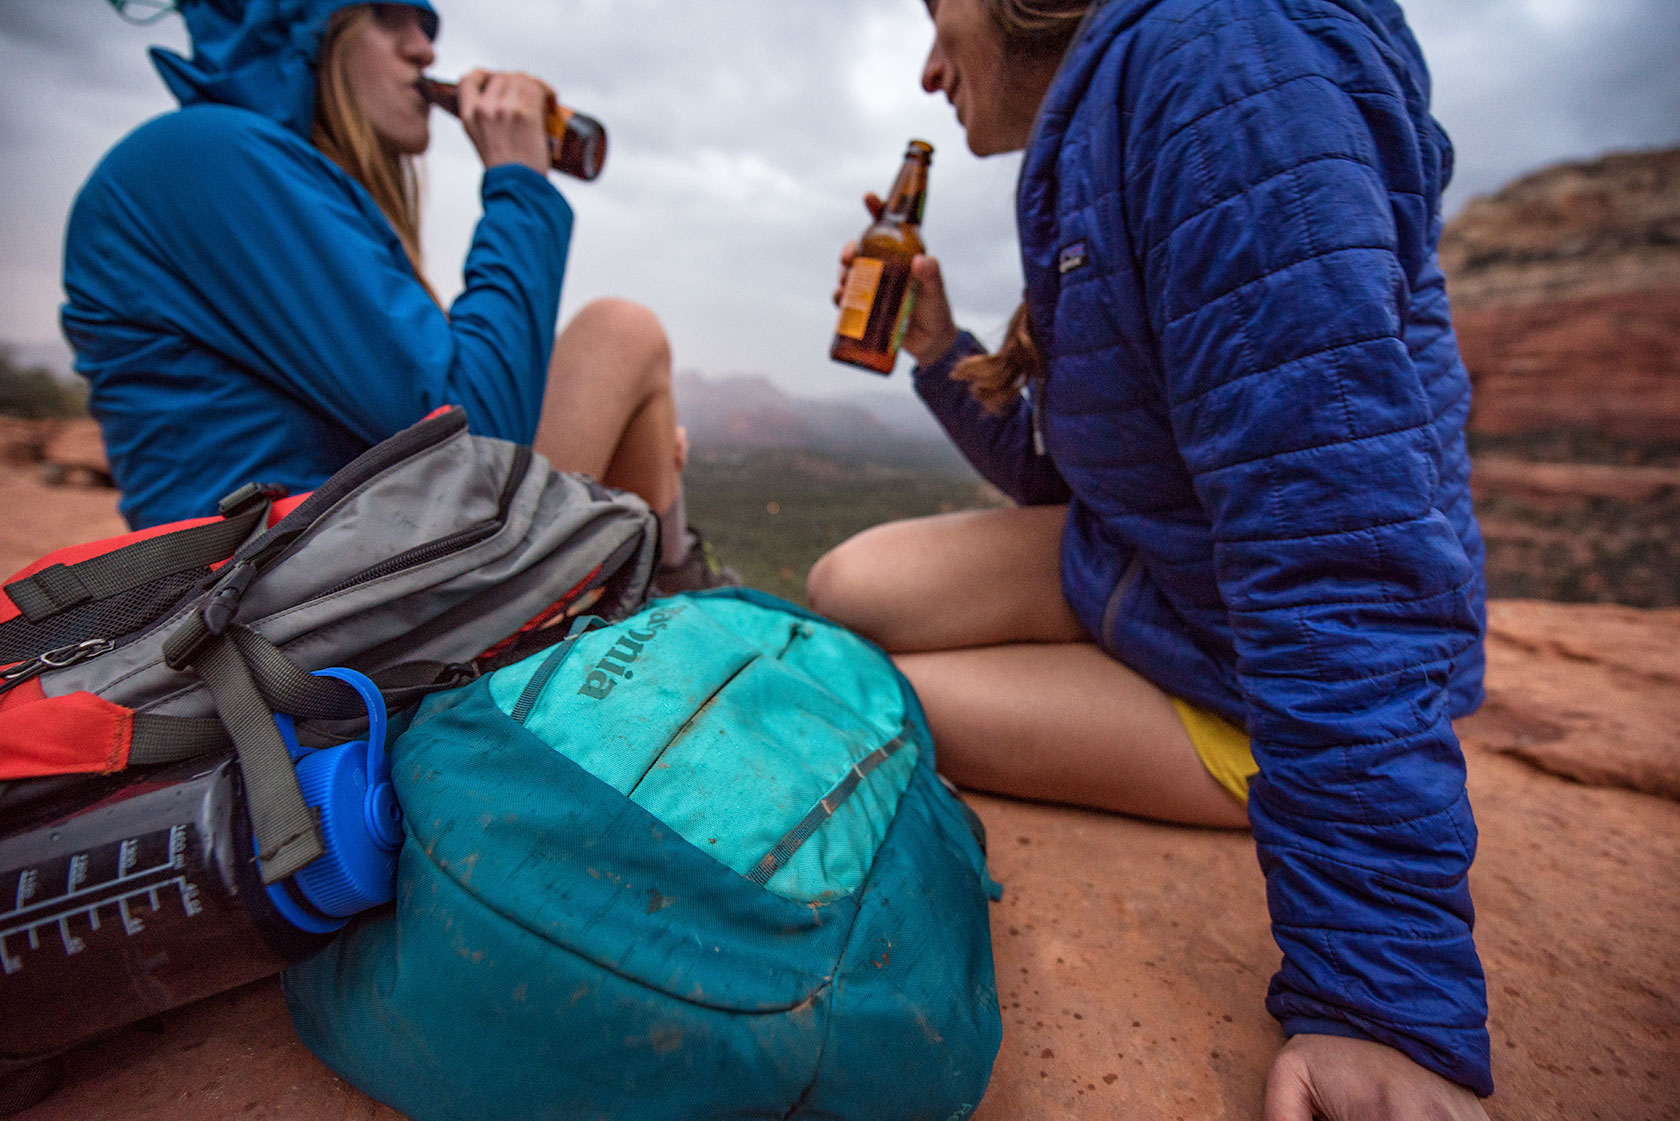 austin-trigg-patagonia-day-pack-sedona-arizona-lifestle-product-backpack-adventure-devils-bridge-beer-product.jpg